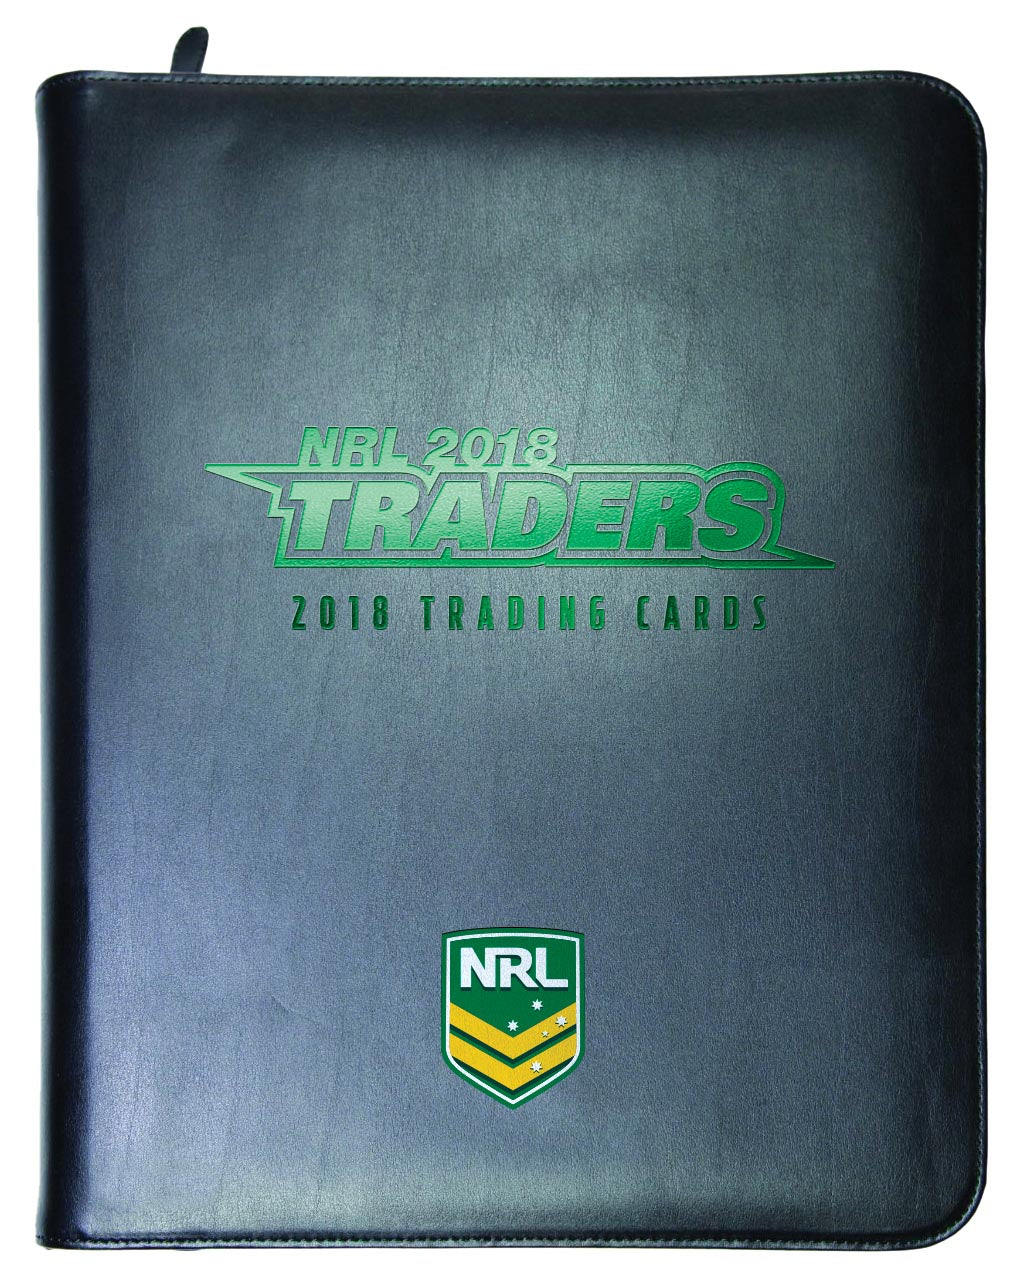 2018 esp NRL Traders Folder